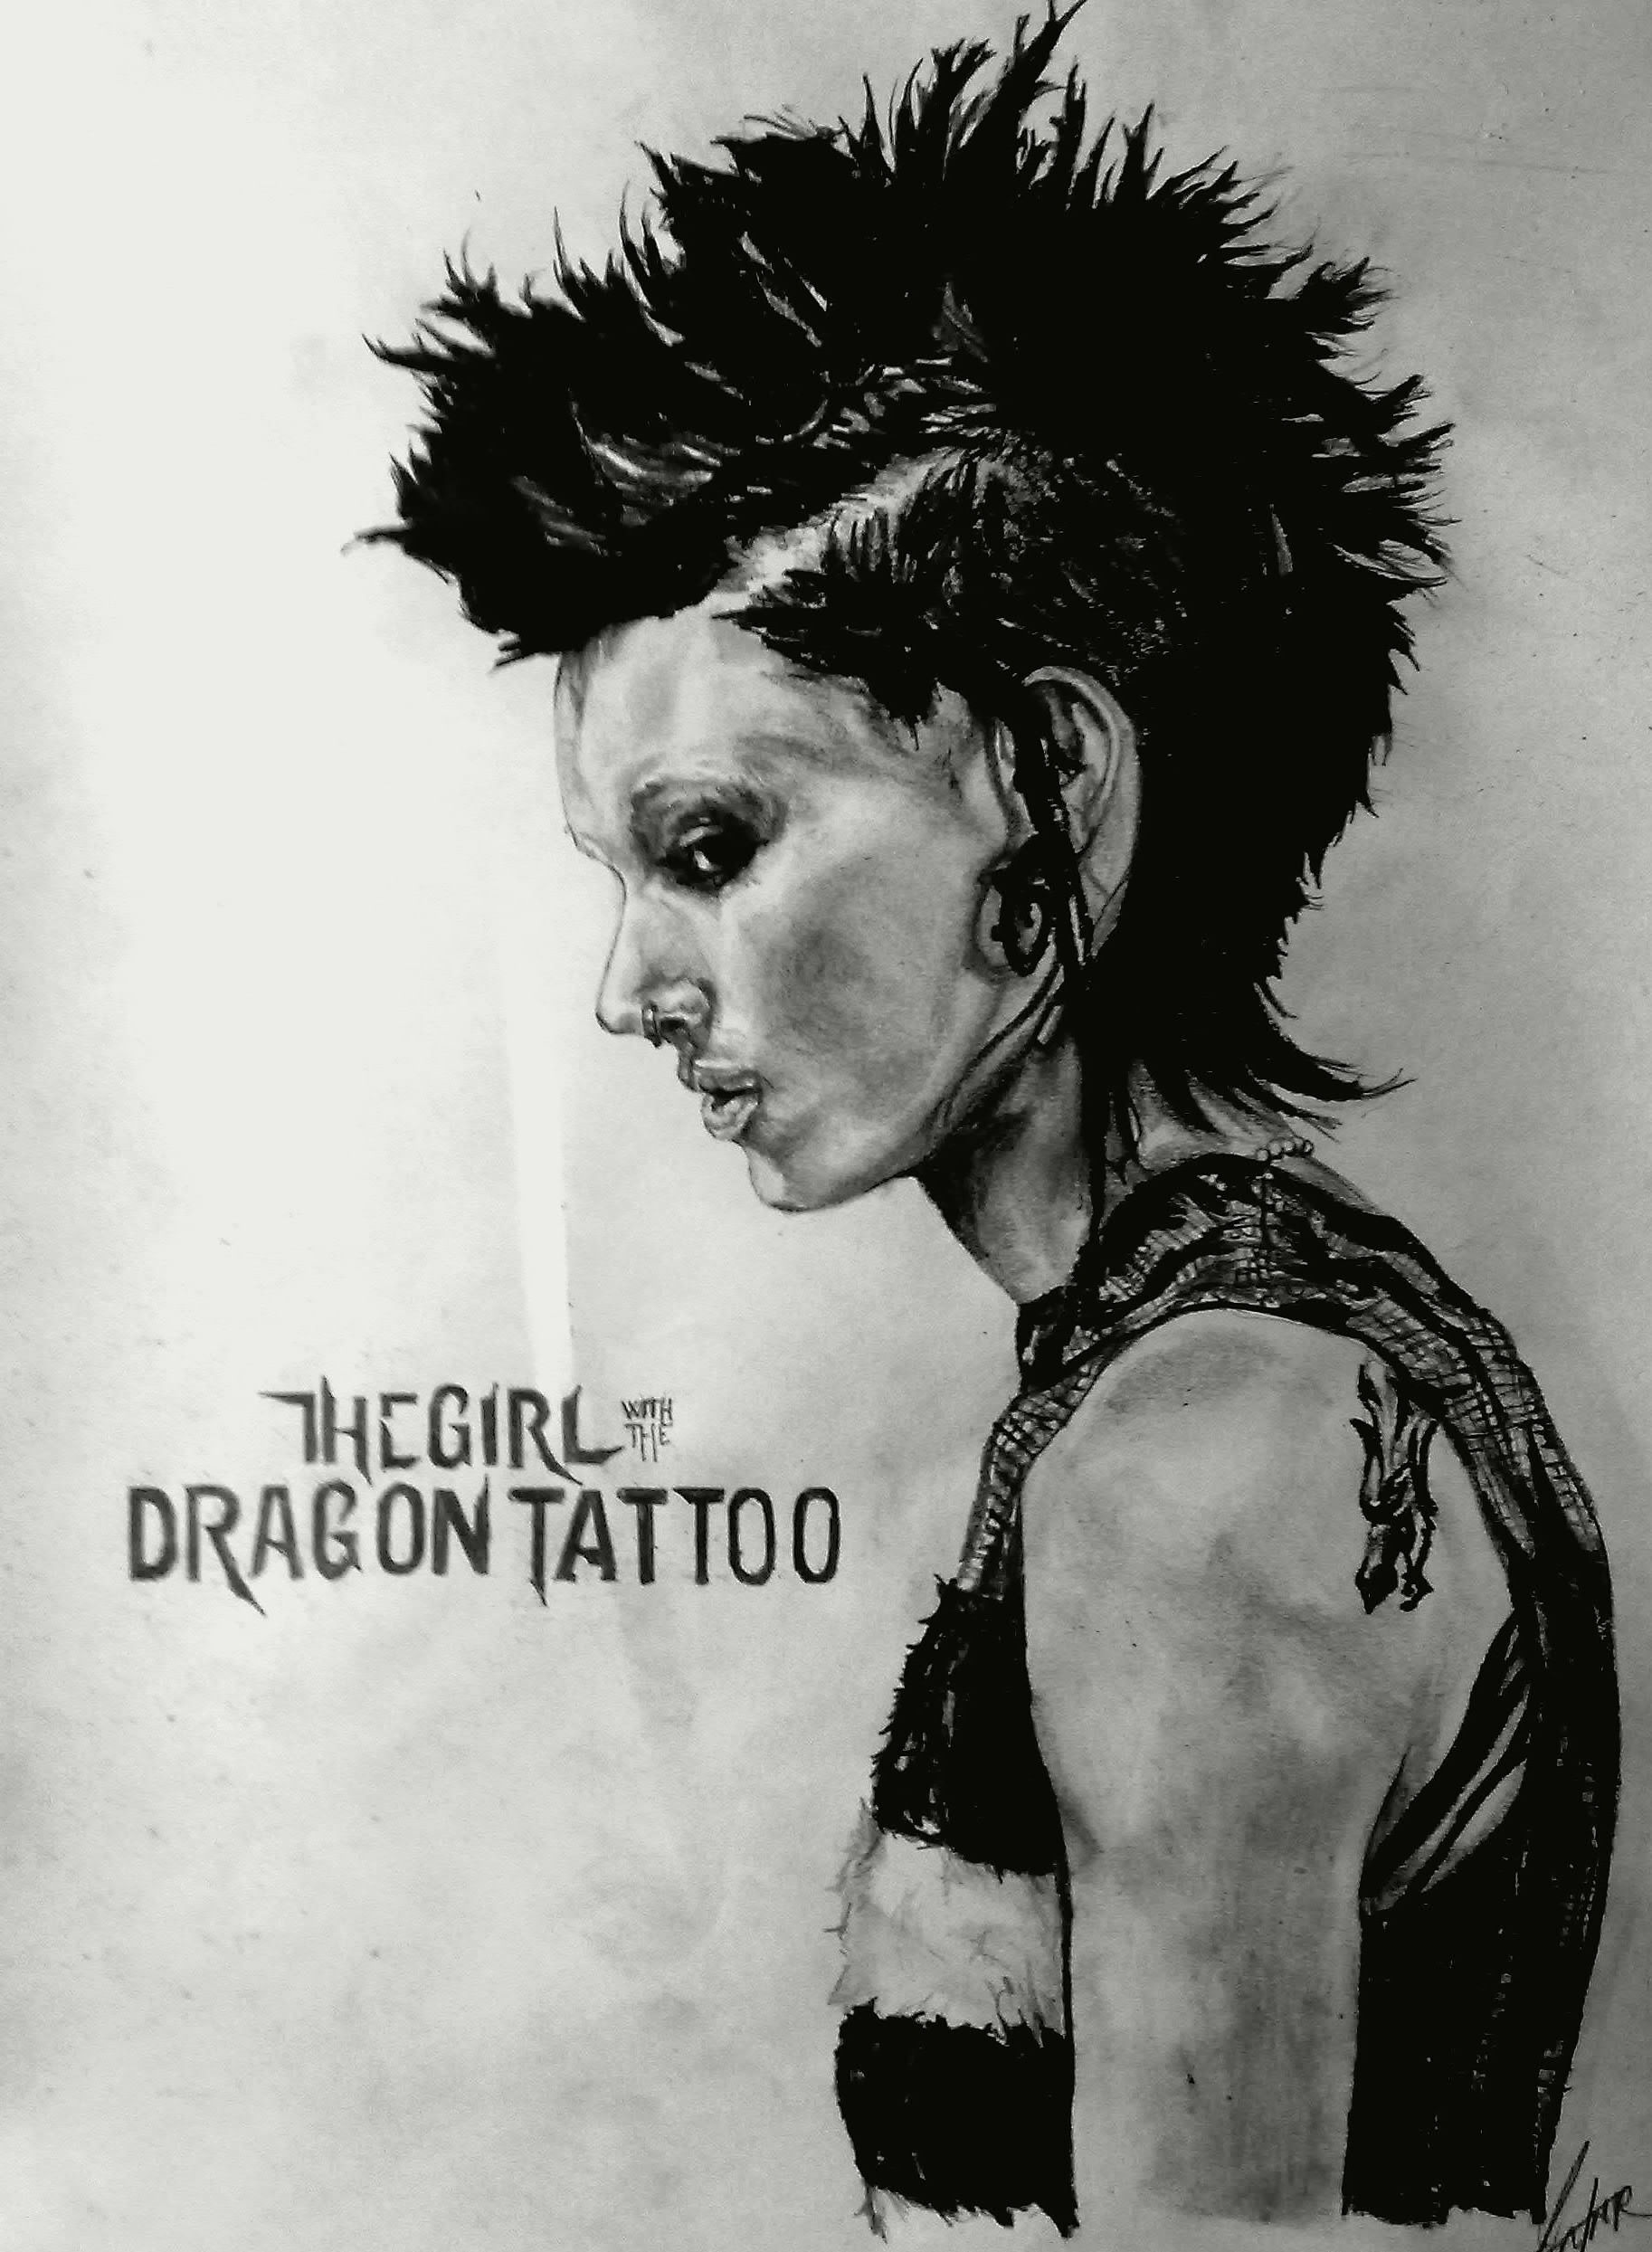 The Girl With The Dragon Tattoo Wallpaper Posted By Samantha Johnson